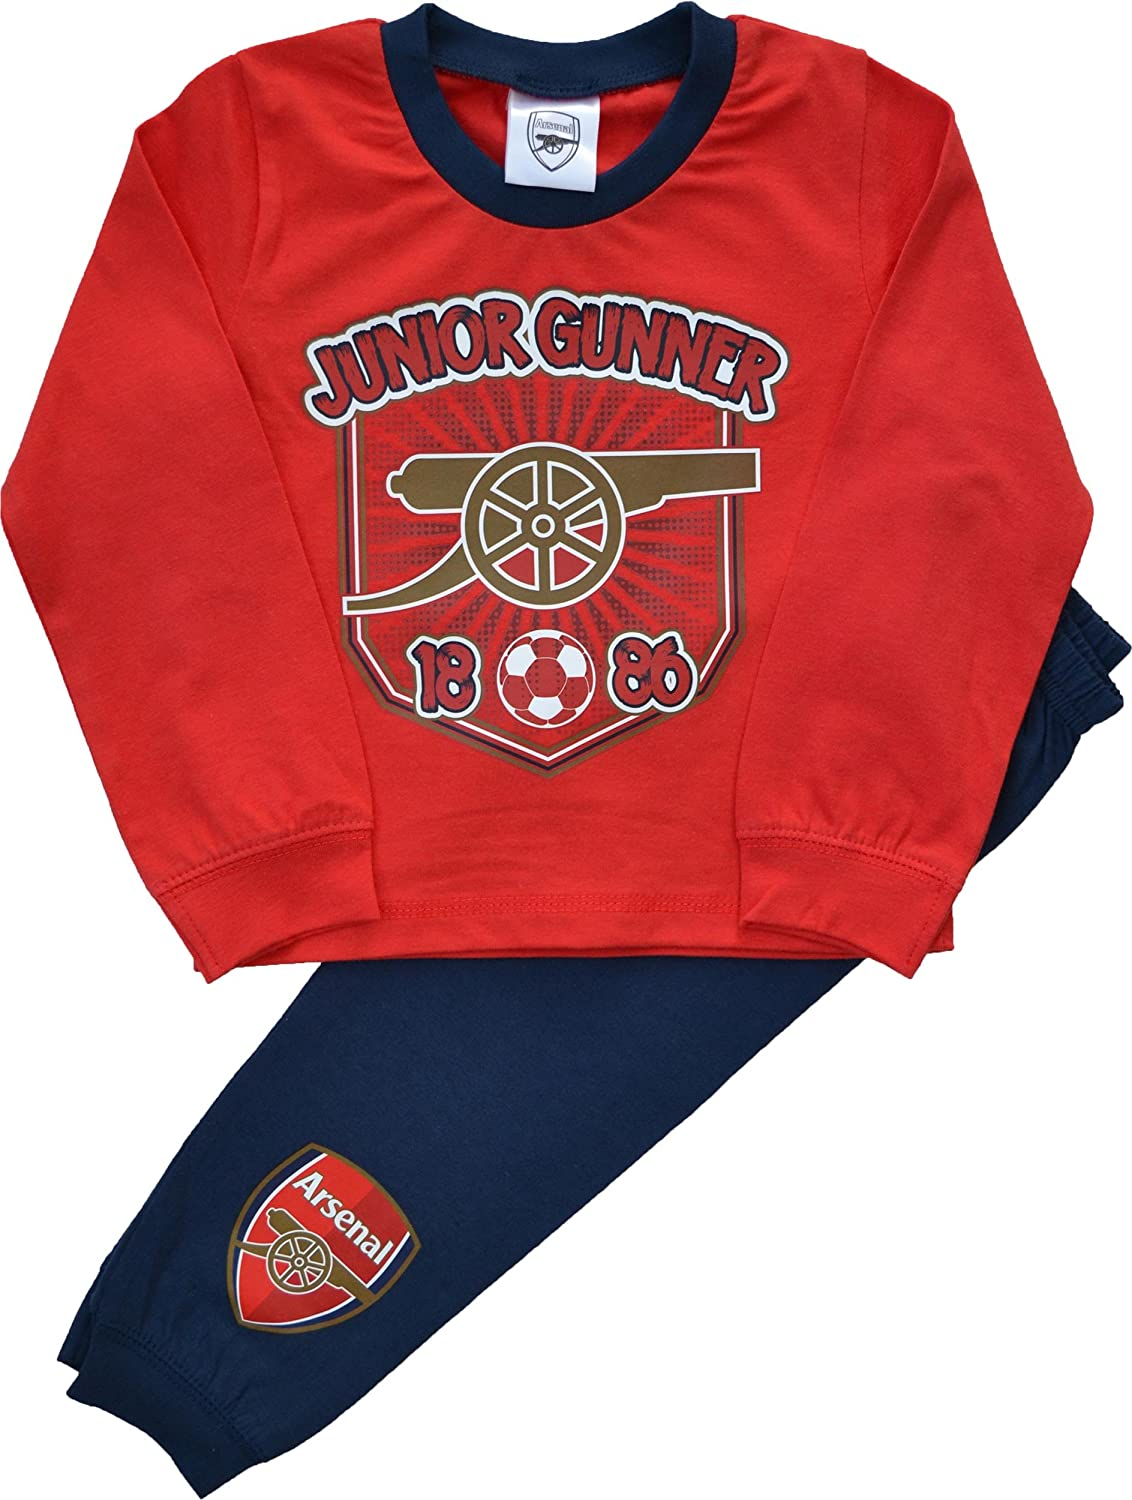 Boys Arsenal Football Club Junior Gunners Pyjamas Sizes 12 Months to 4 Years